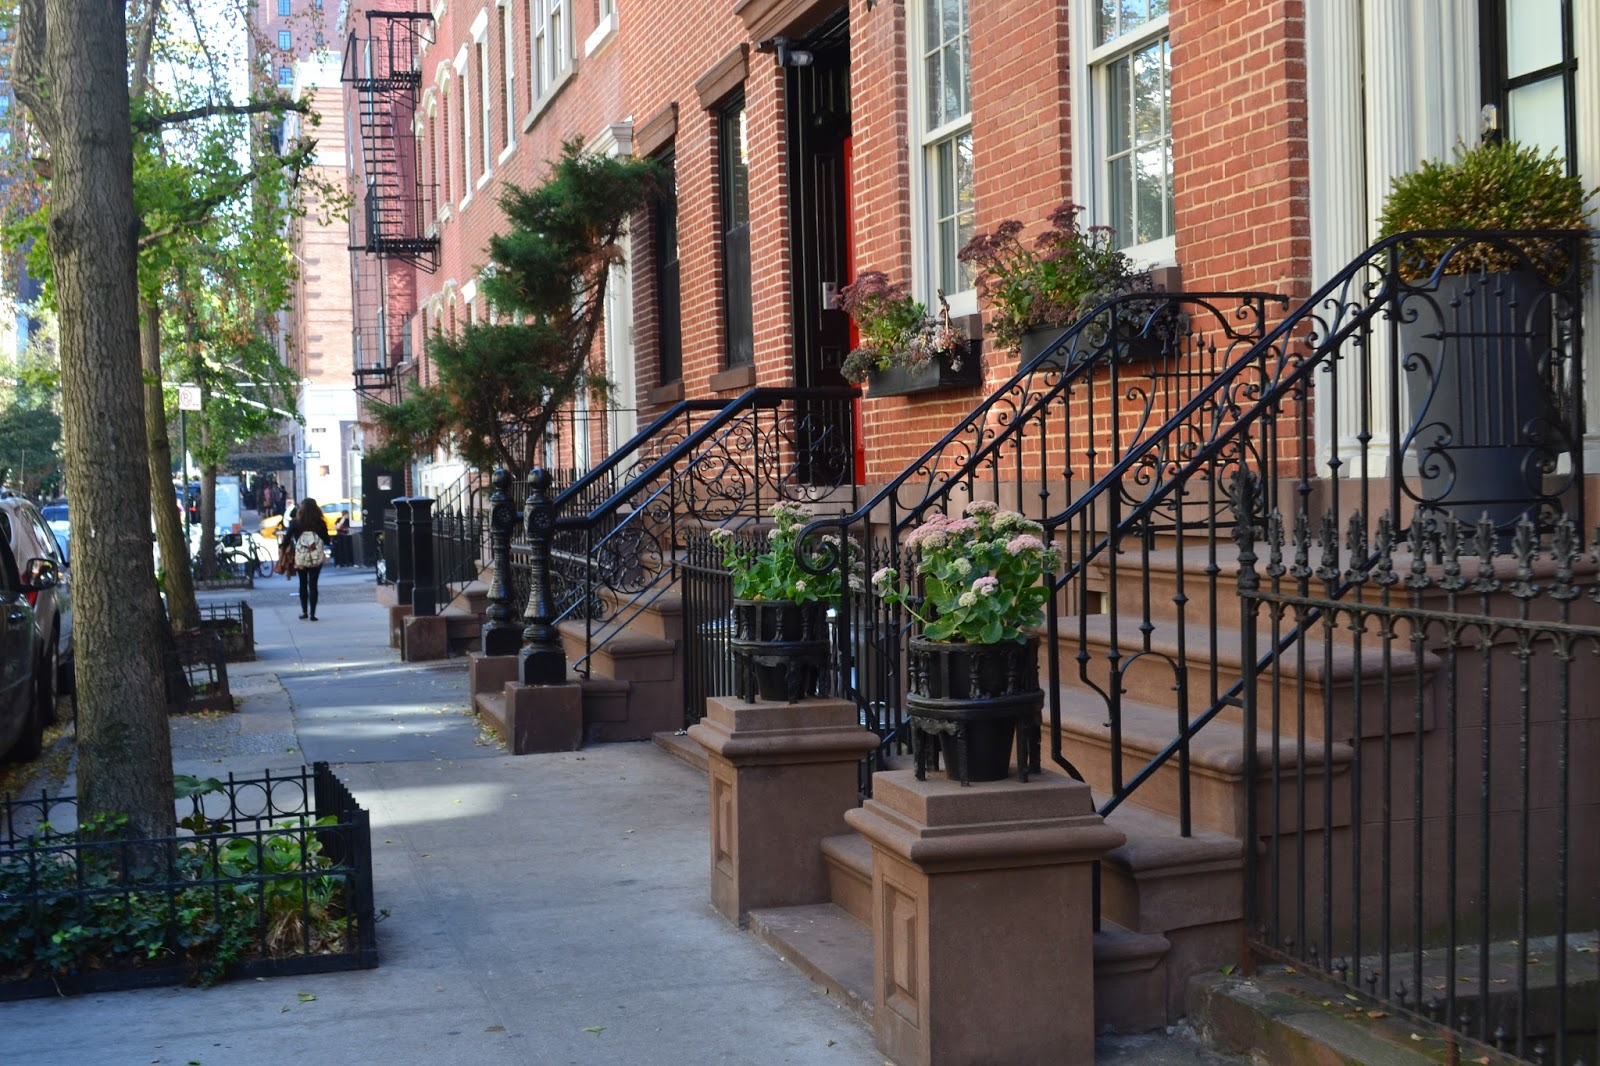 GREENWICHVILLAGE